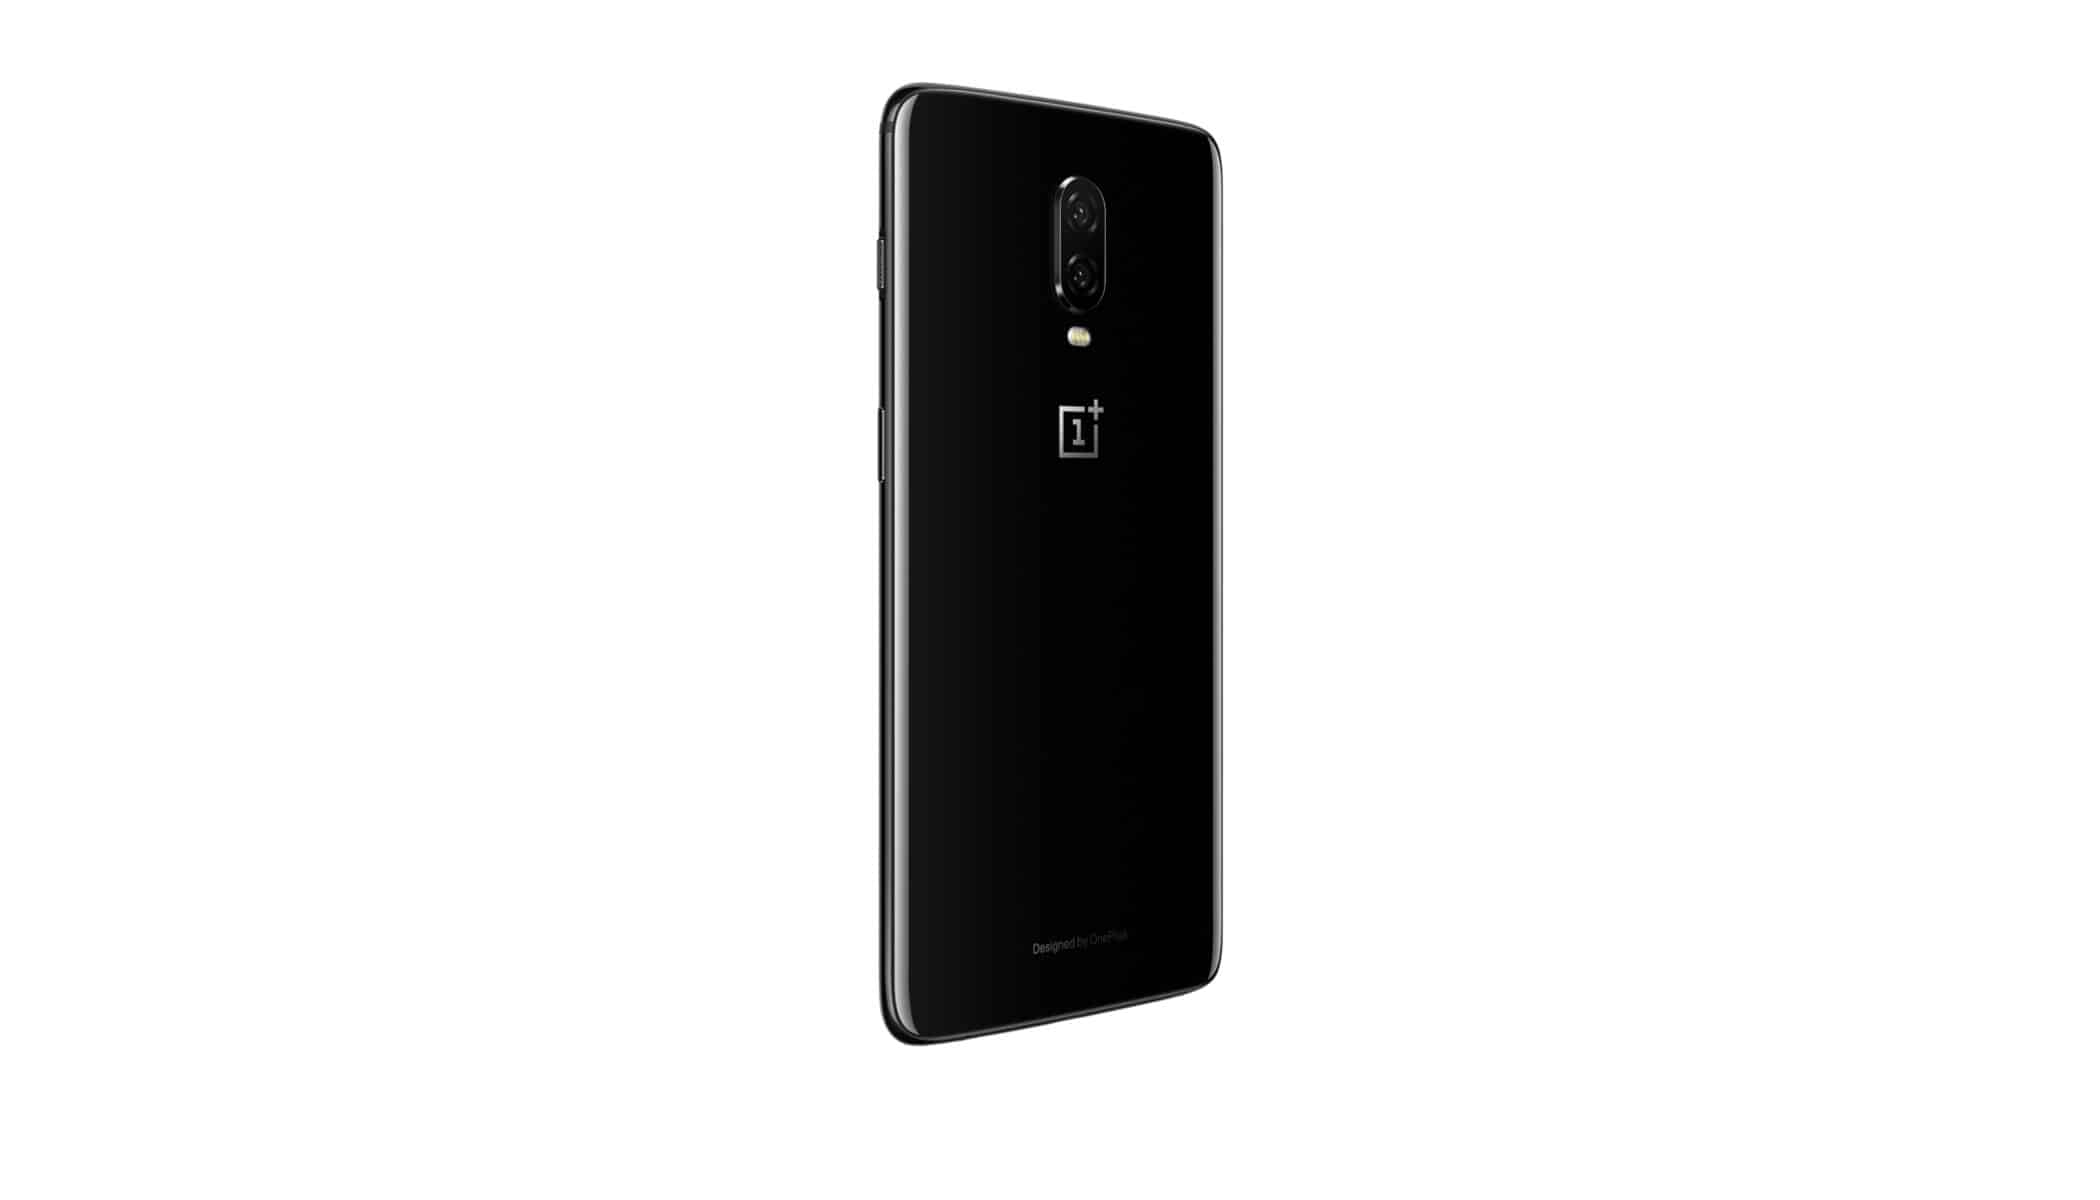 OnePlus 6T Official Product Render 5